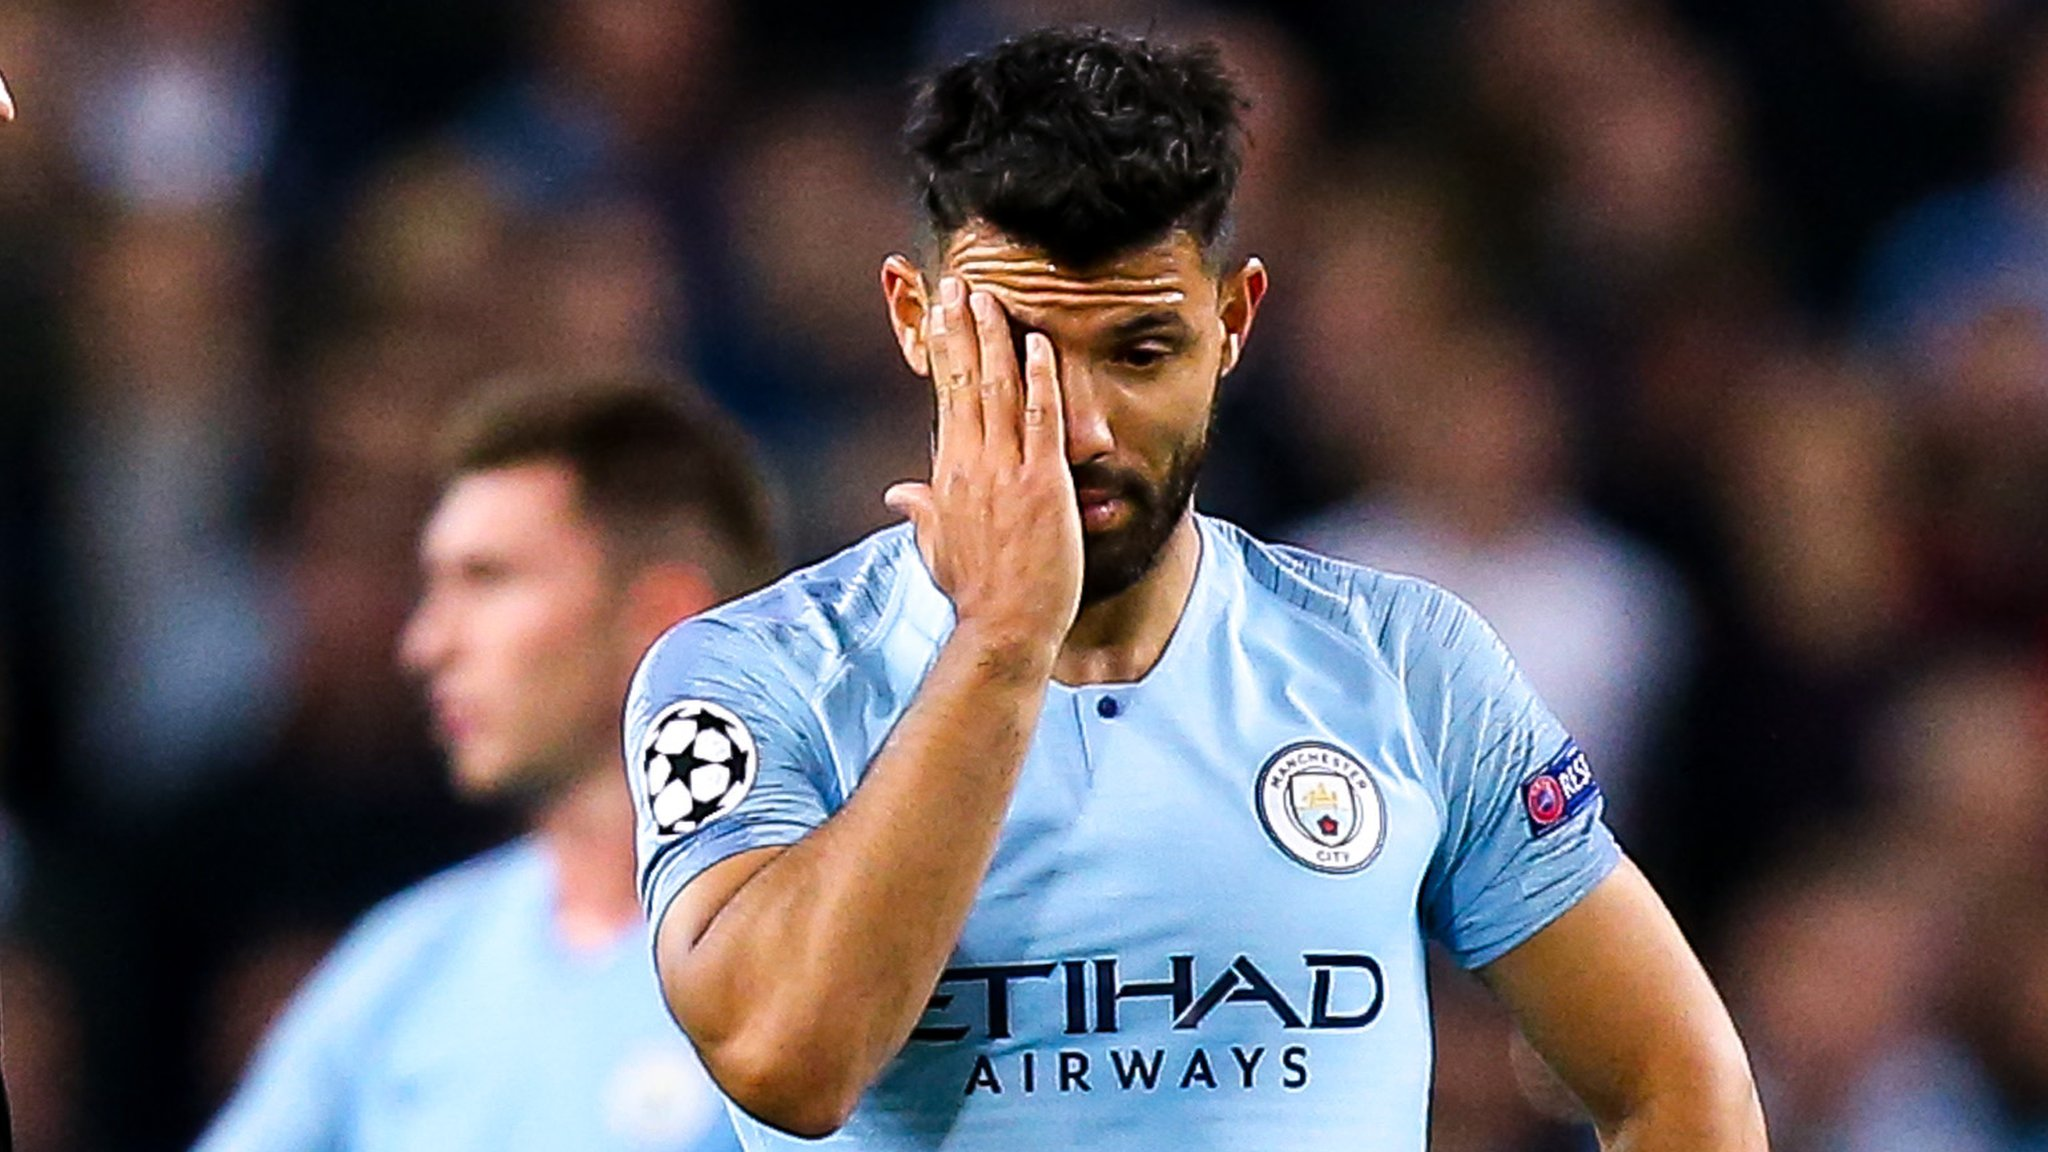 Man City cannot use crowd or Guardiola ban as excuses for surprise loss - Arteta